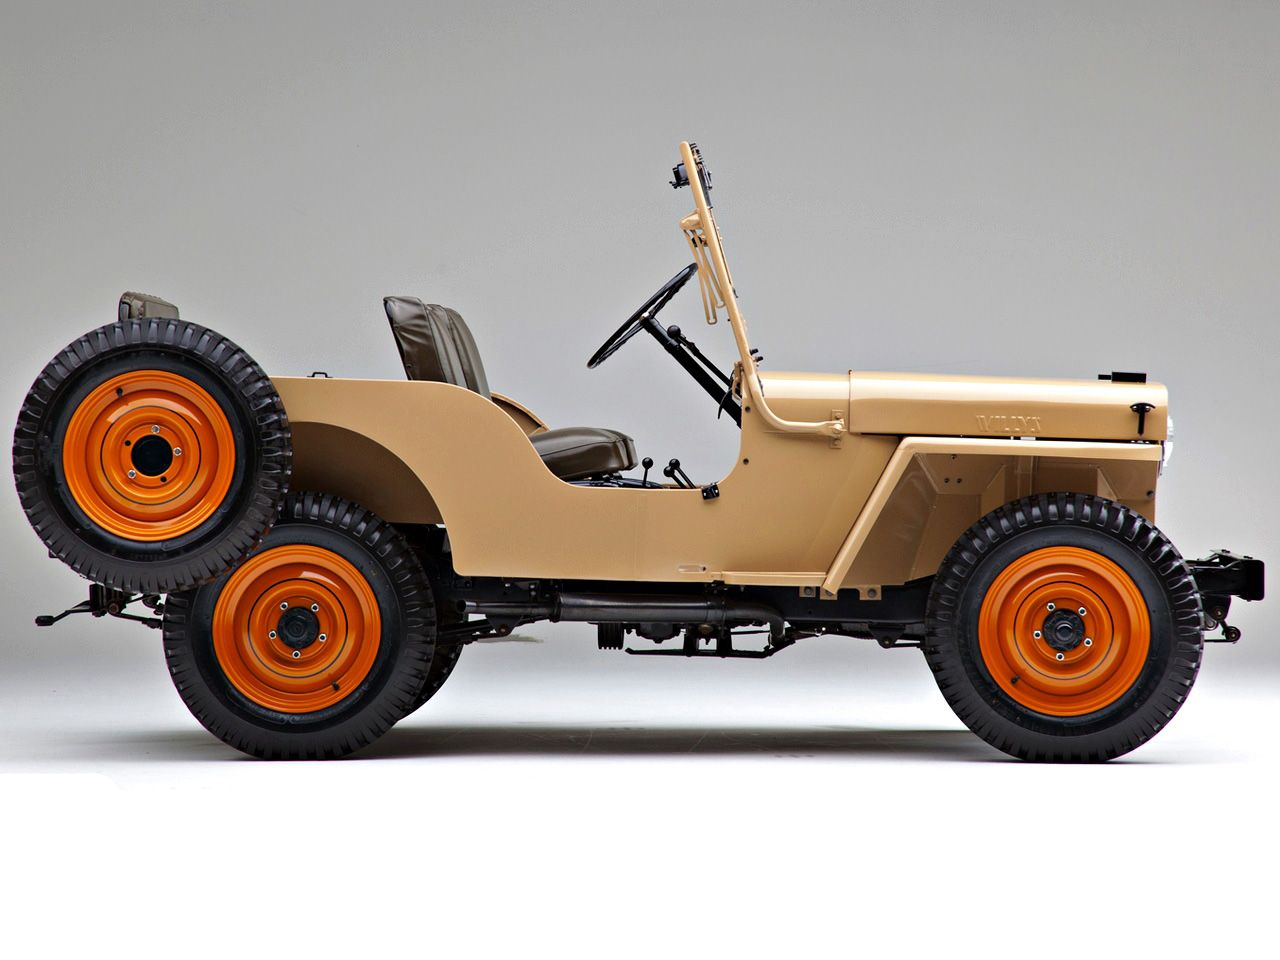 Side Profile Of Willys Overland Jeep Cj 2a Shown In Harvest Tan